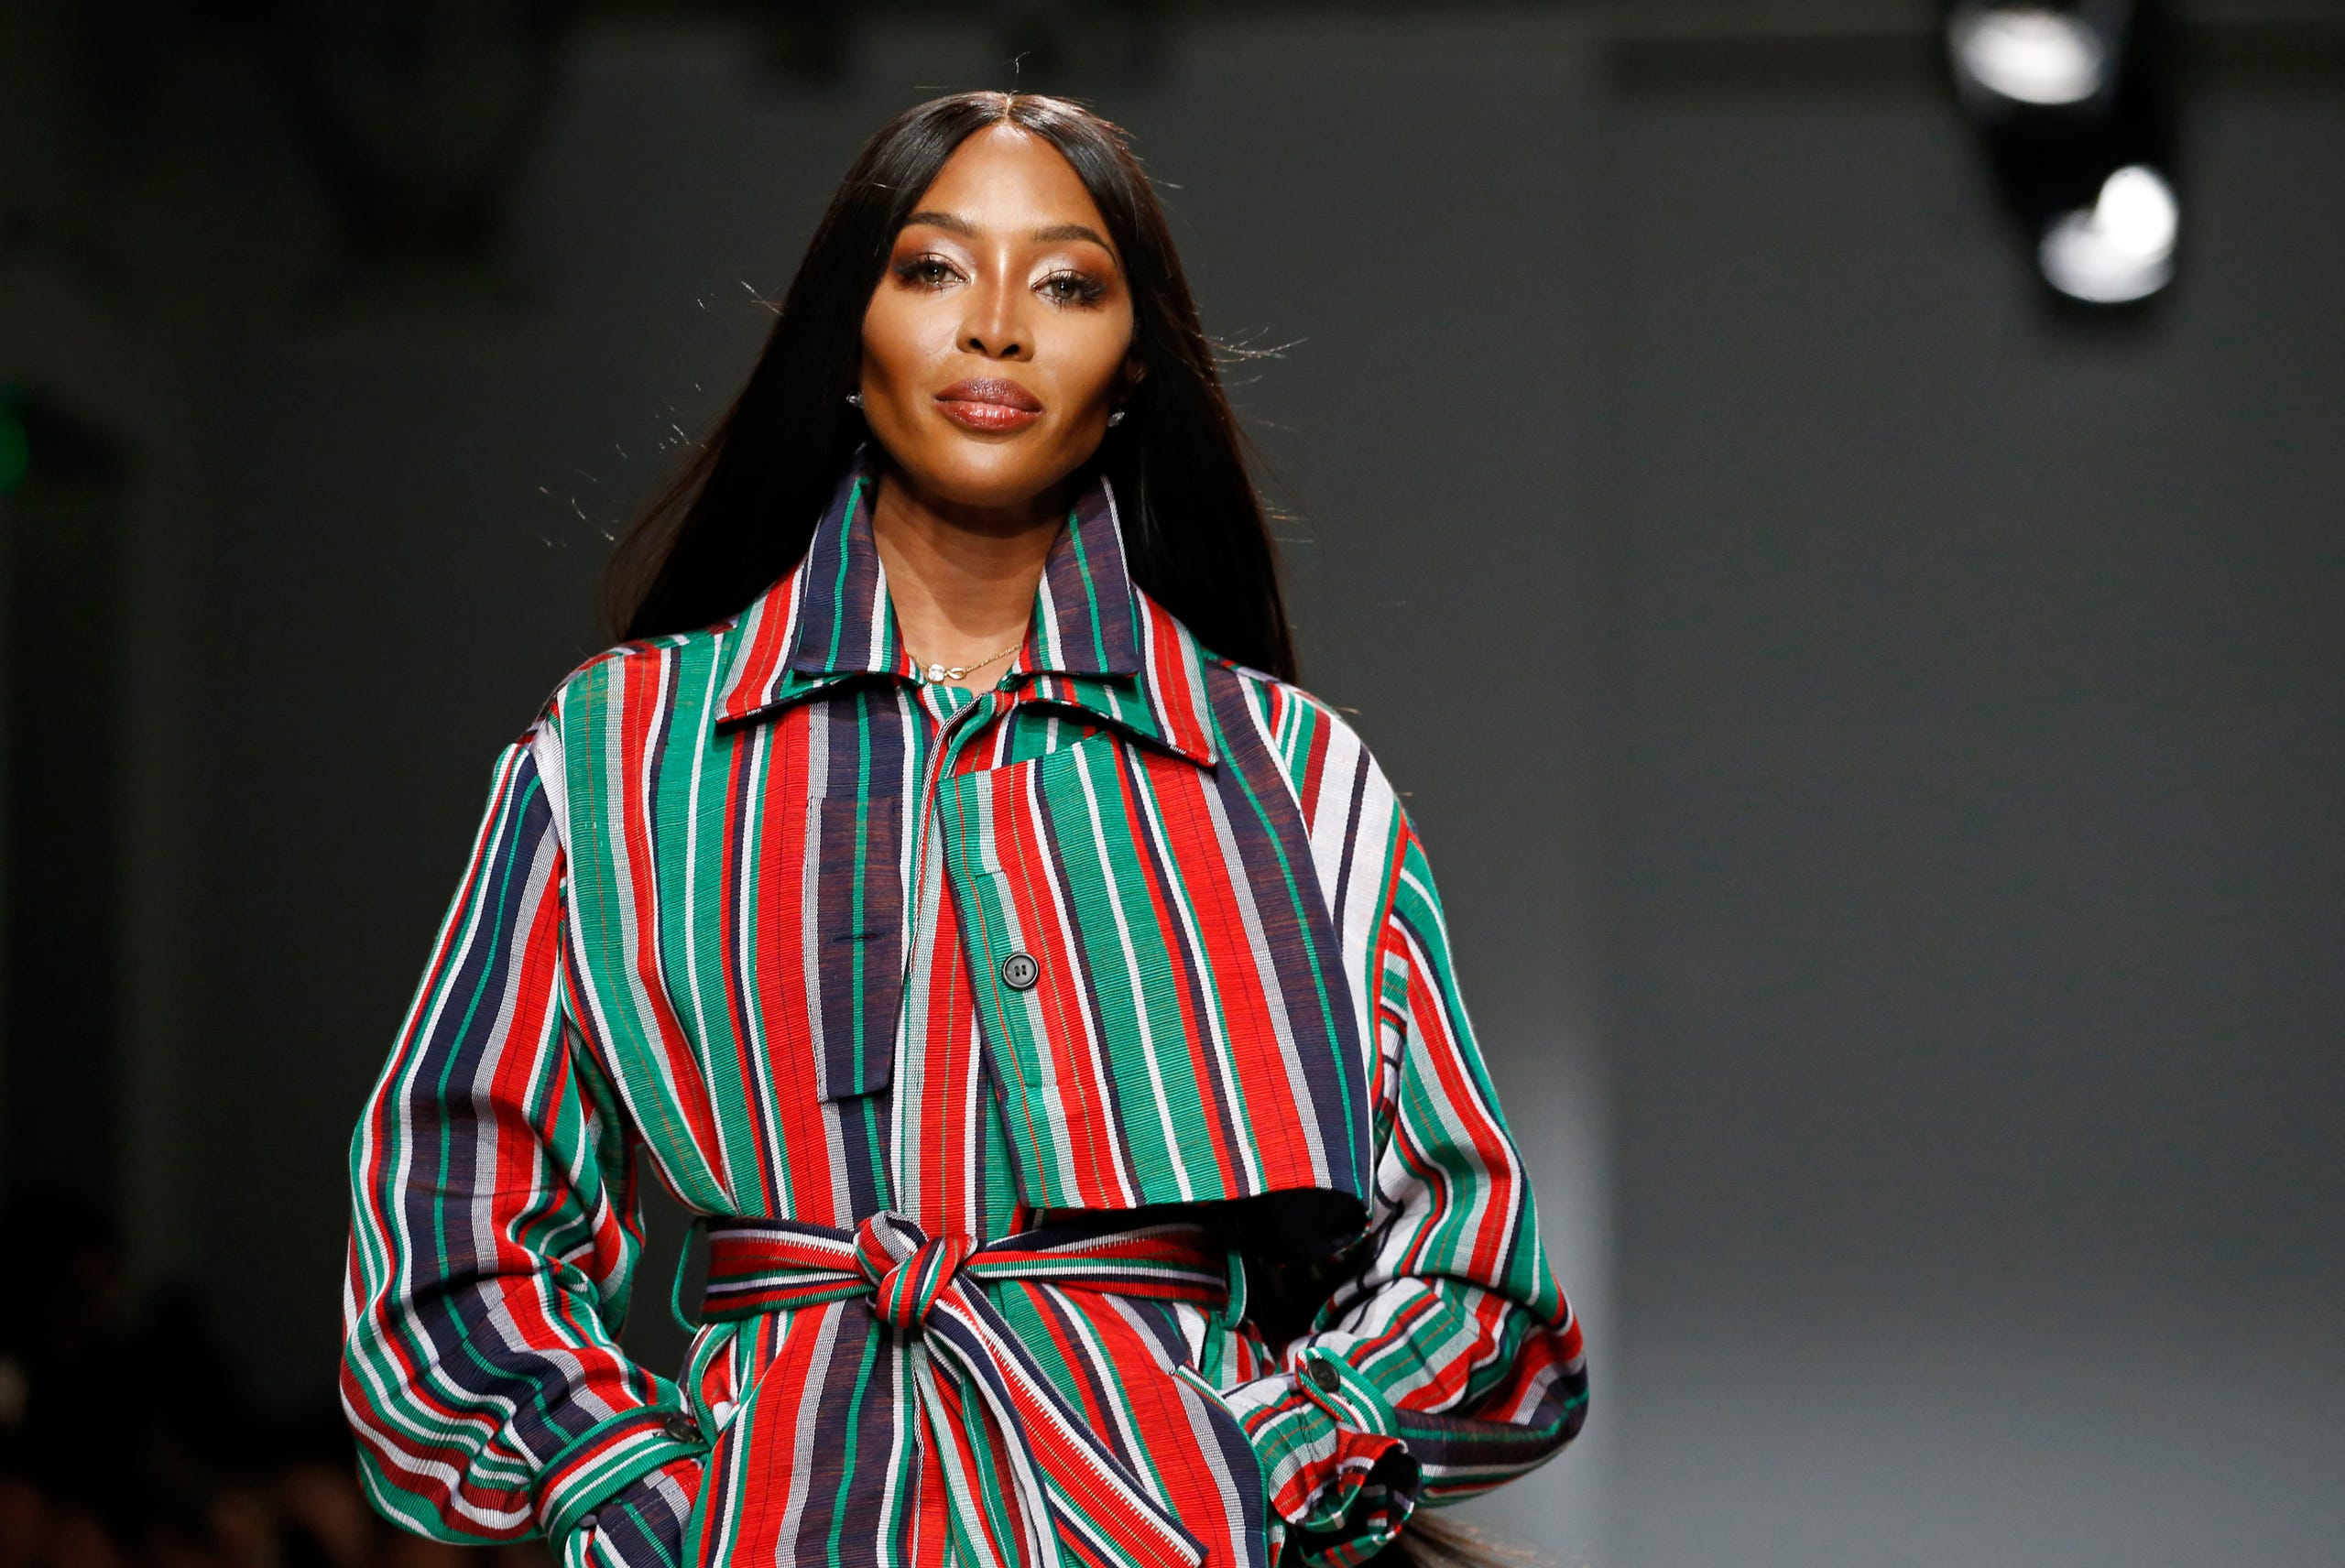 Supermodel, Naomi Campbell welcomes her first child at 50